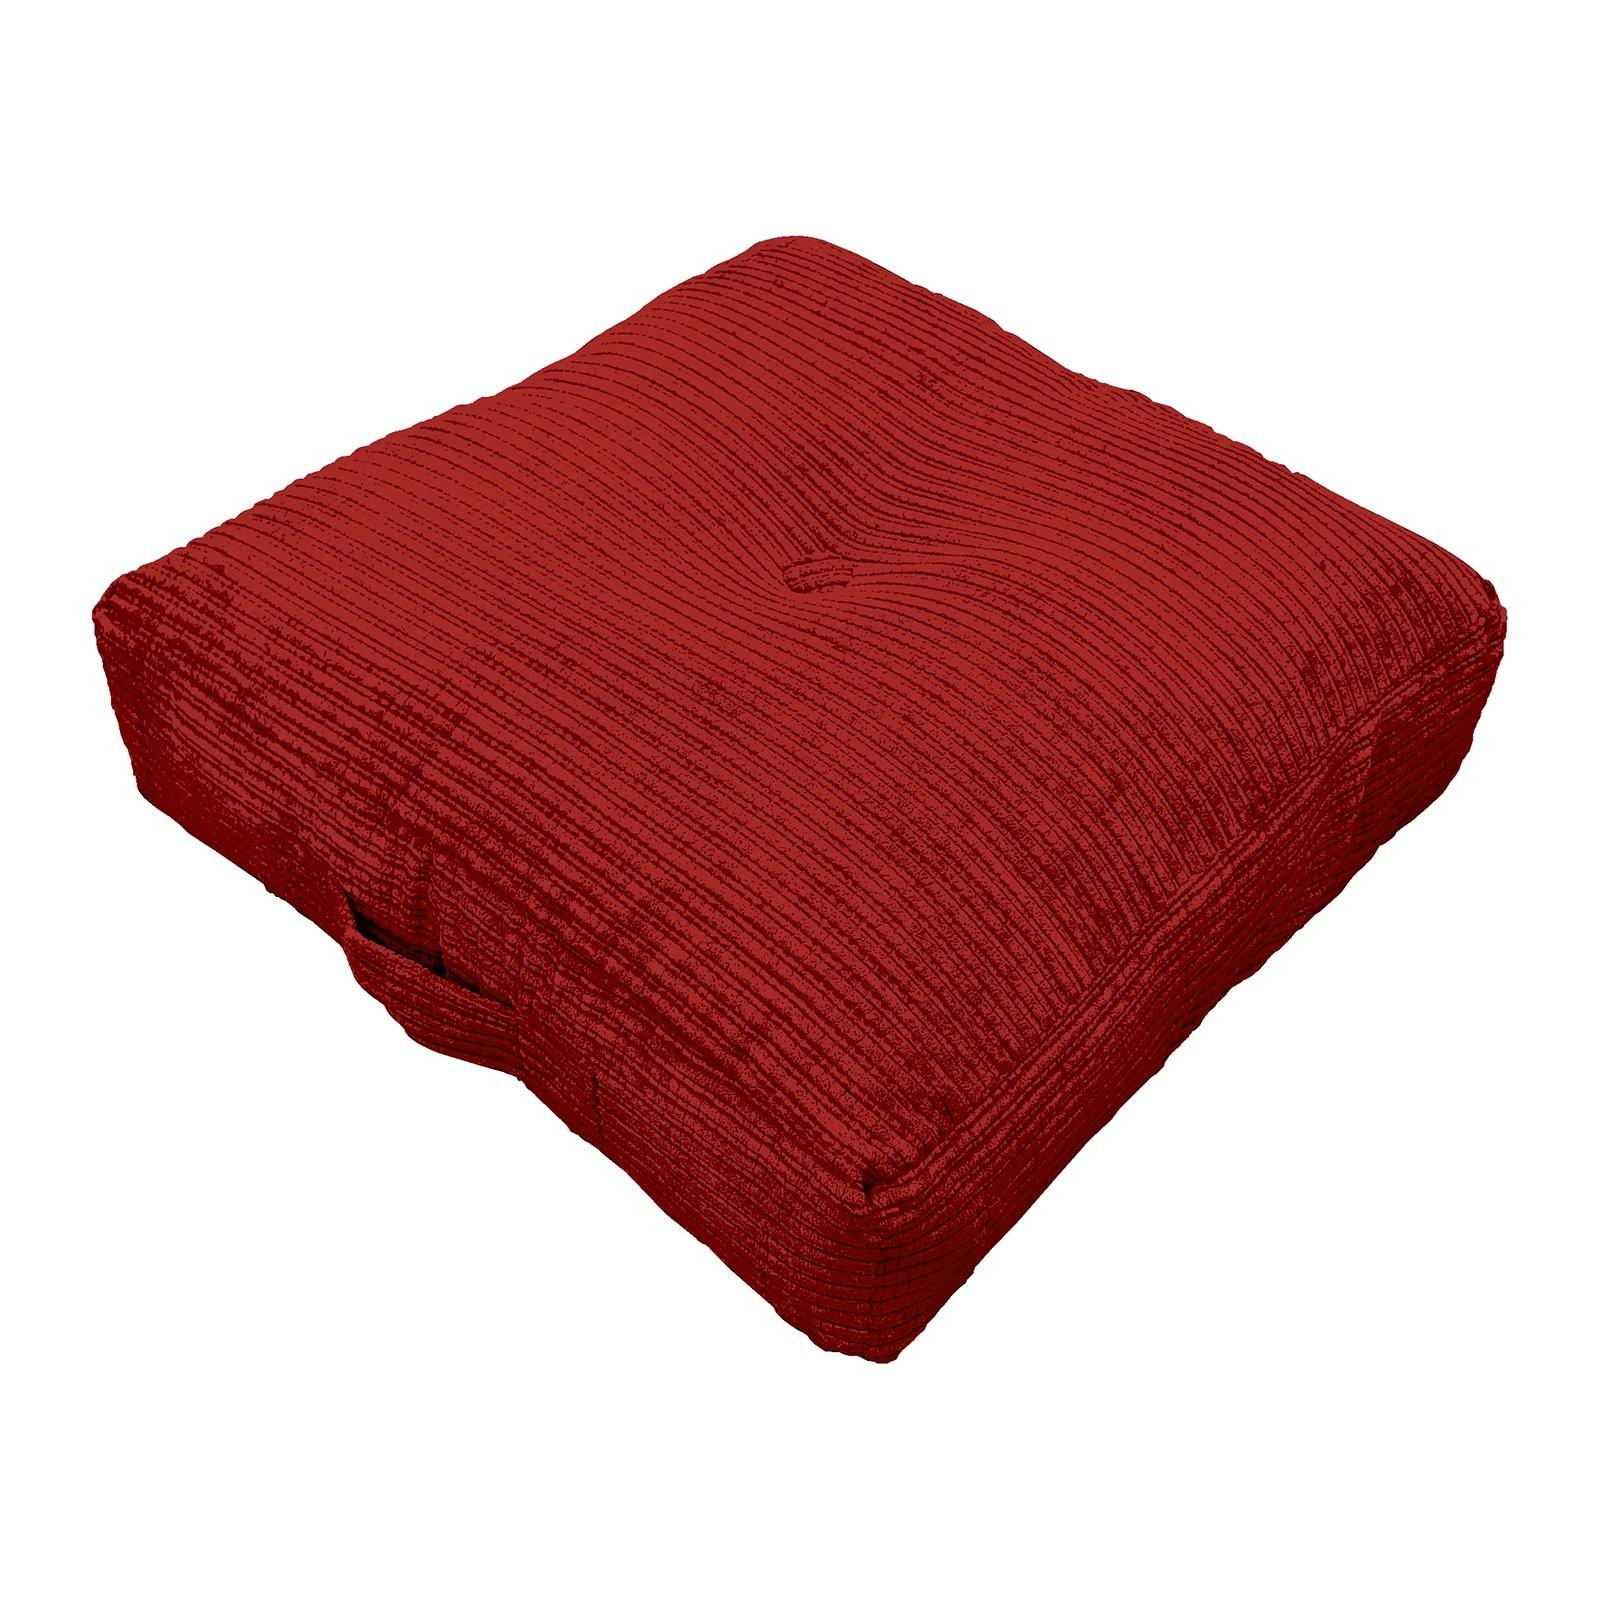 Elements Perry Oversized Floor Cushion Cushions